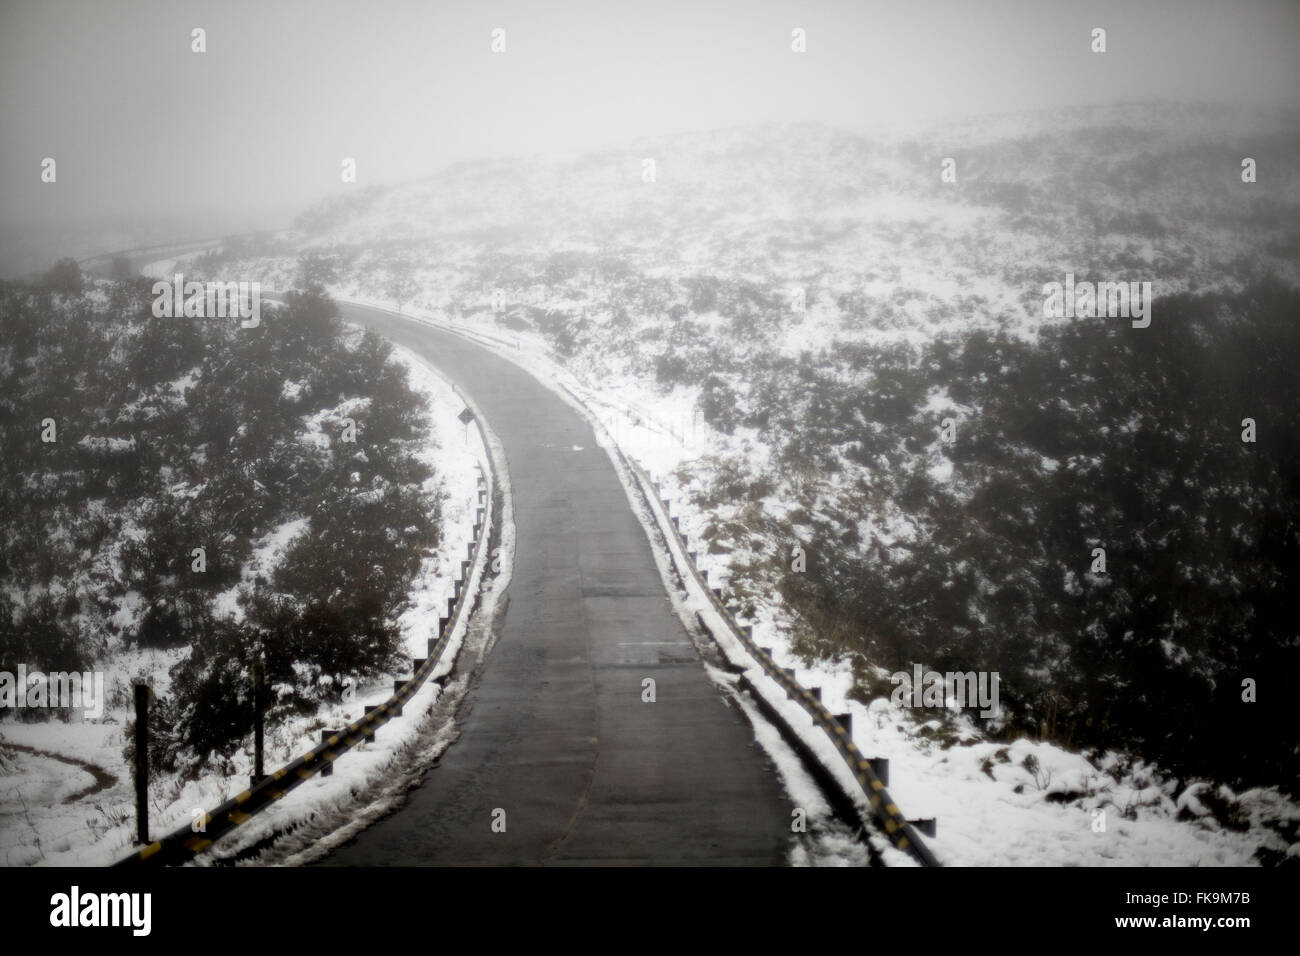 SC 439 road with snow - Church Hill City Urubici - Stock Image